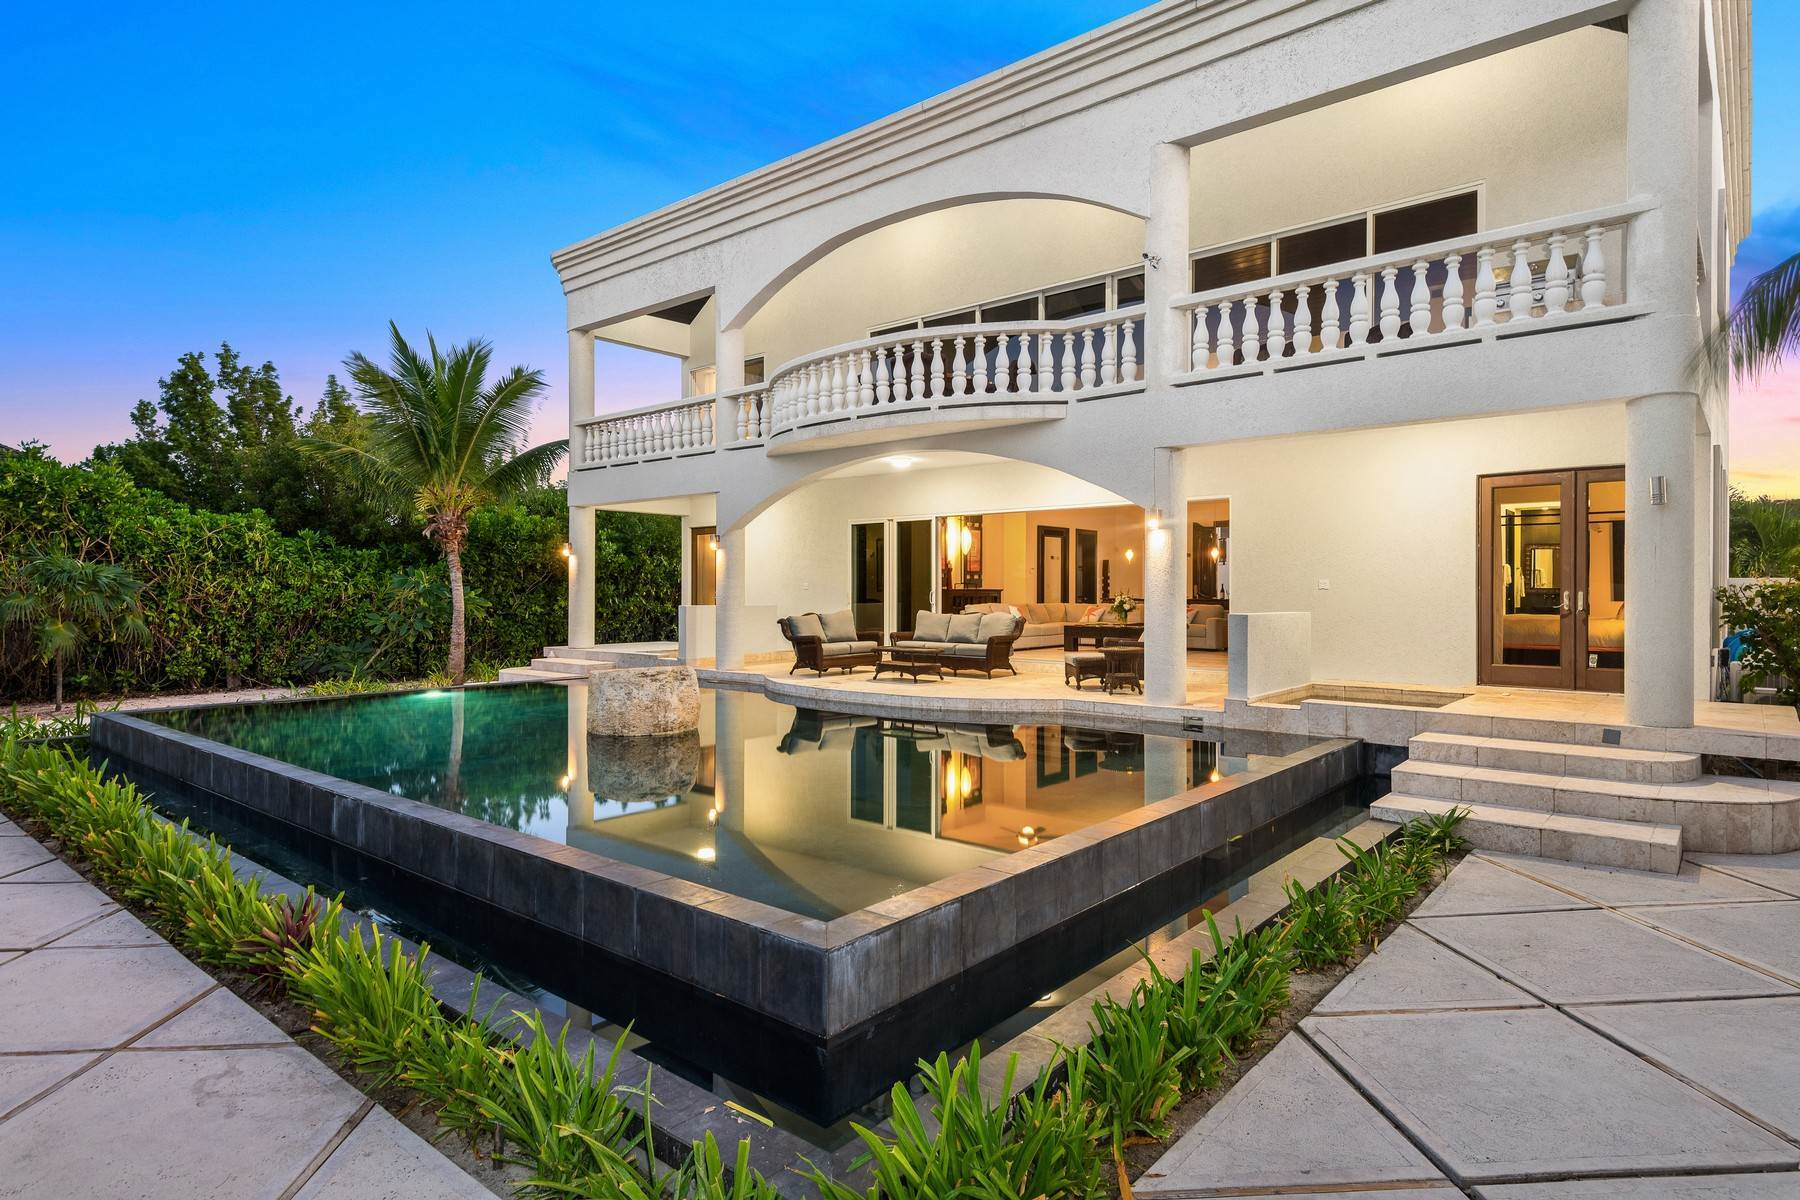 Single Family Homes for Sale at The Bight, Providenciales Turks And Caicos Islands